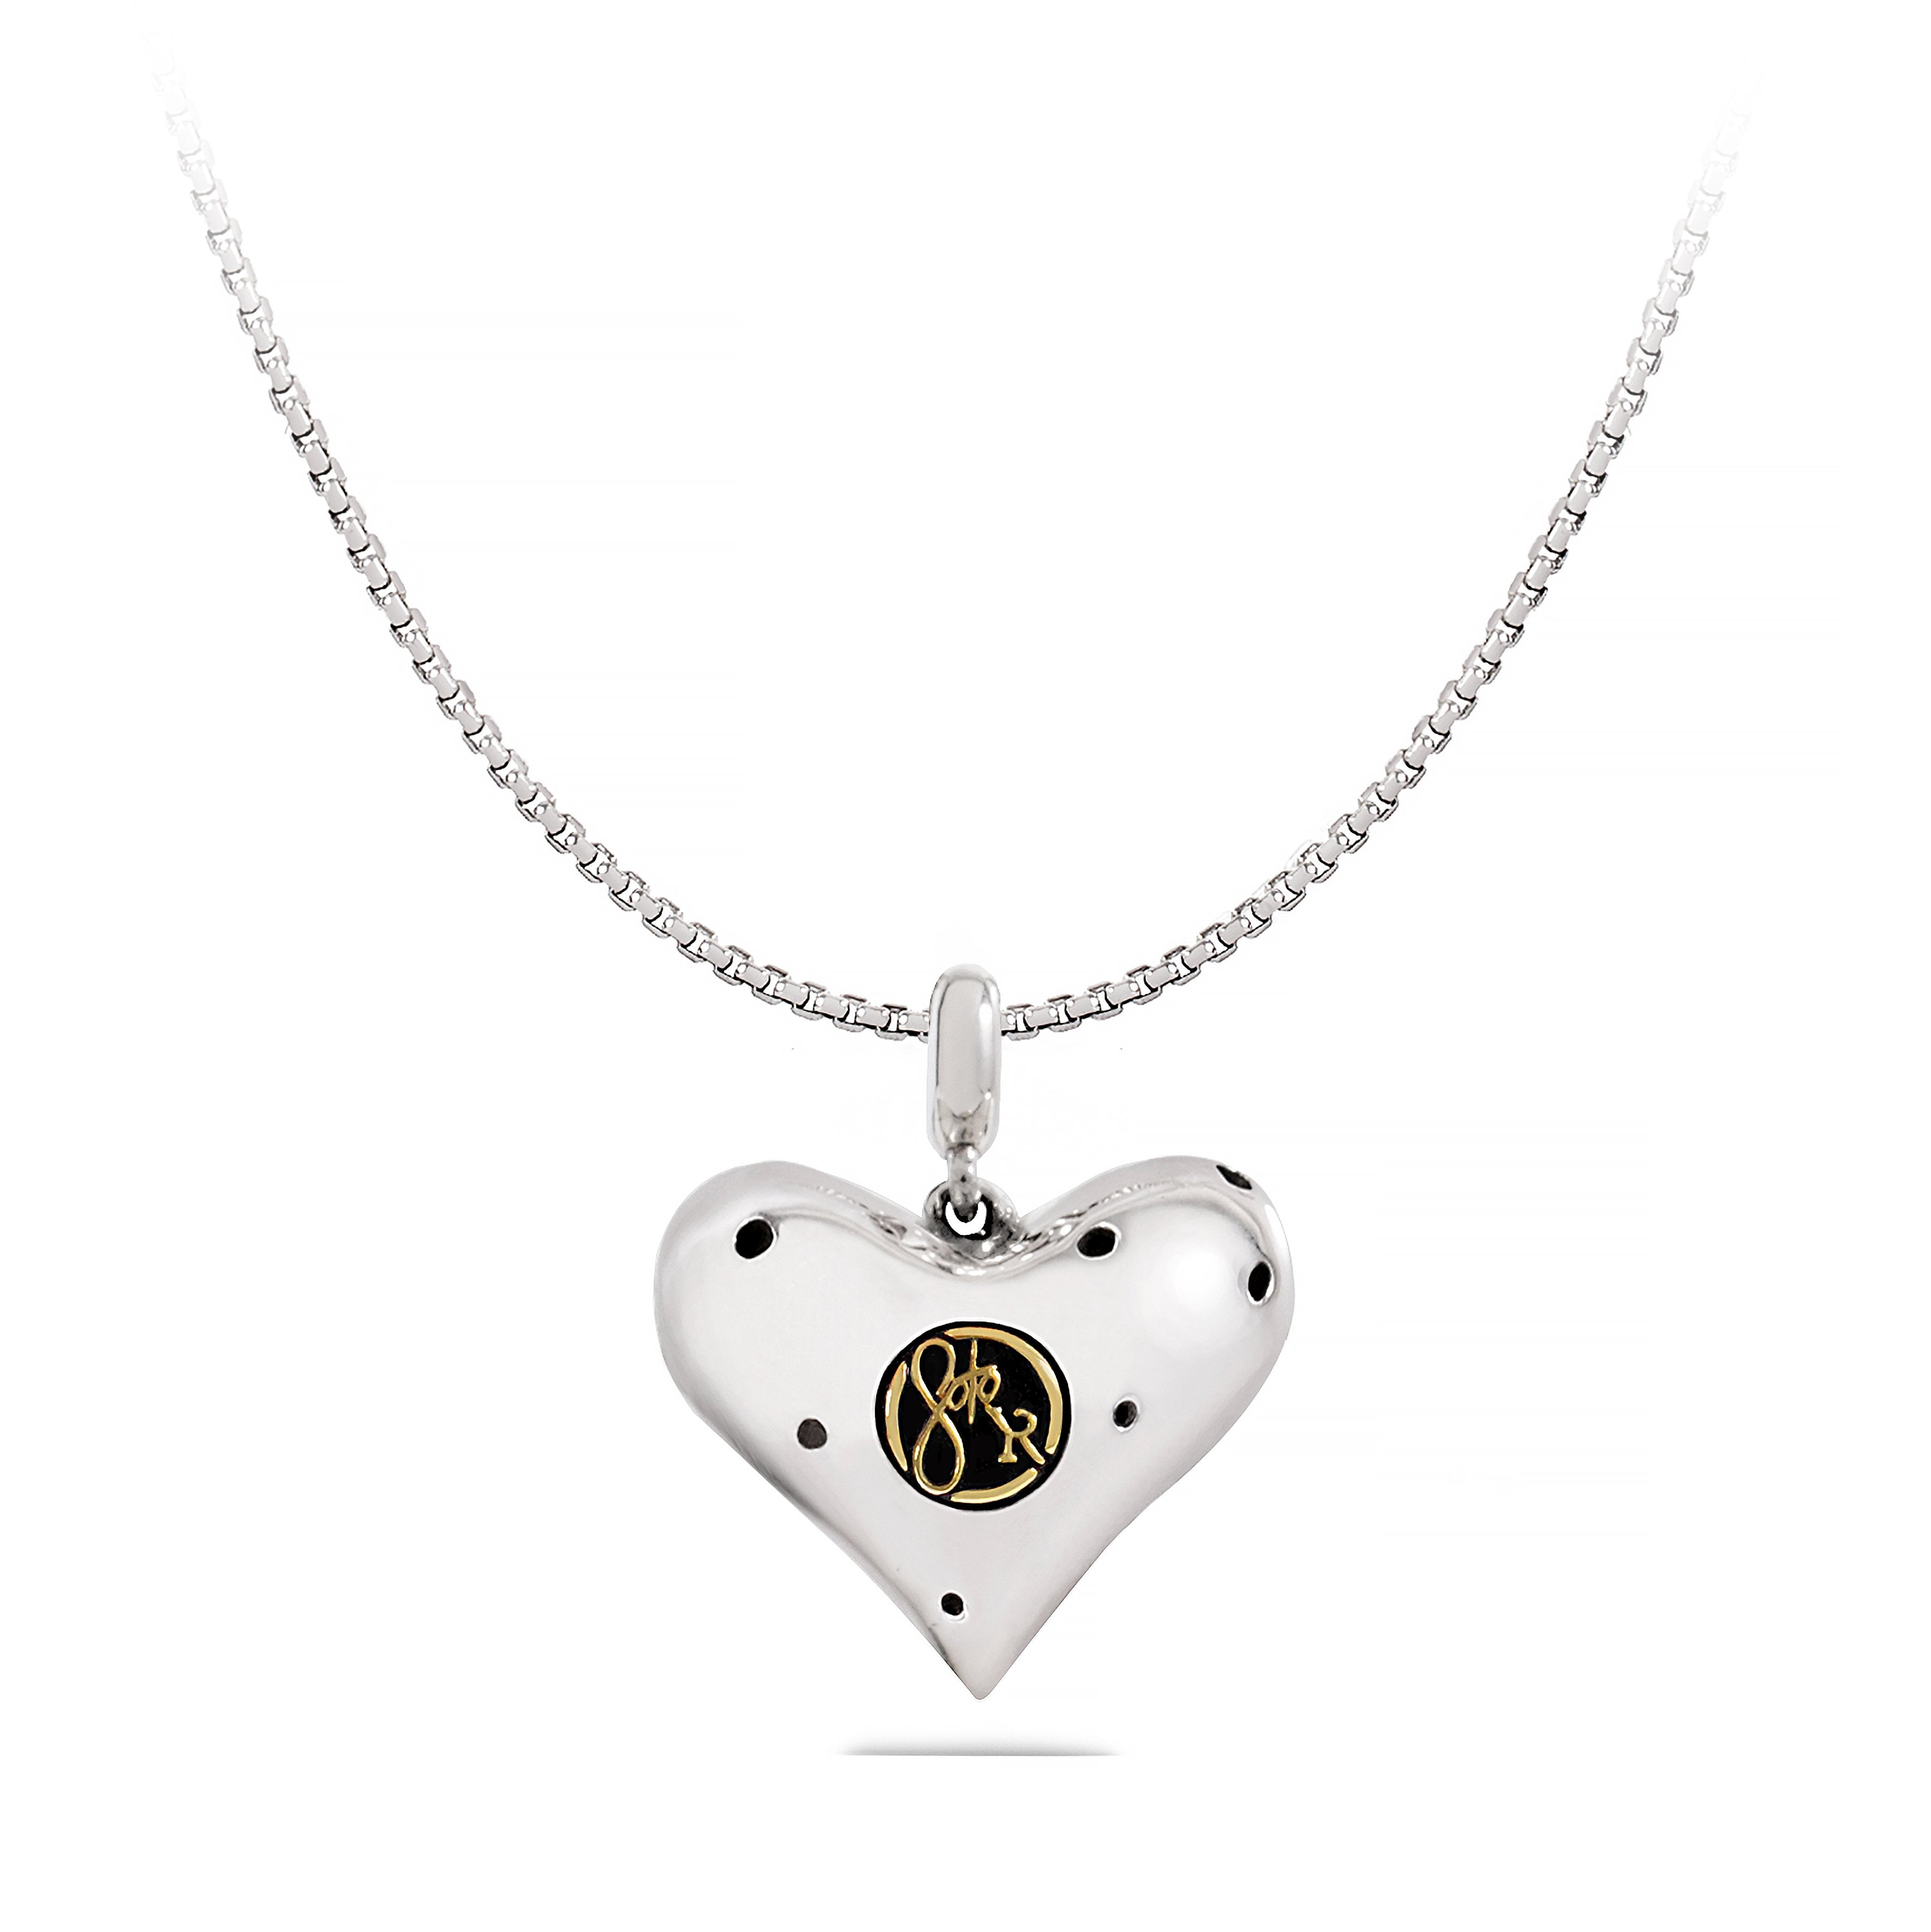 Back of Sterling Silver Heart with Round Brass Signature Tag